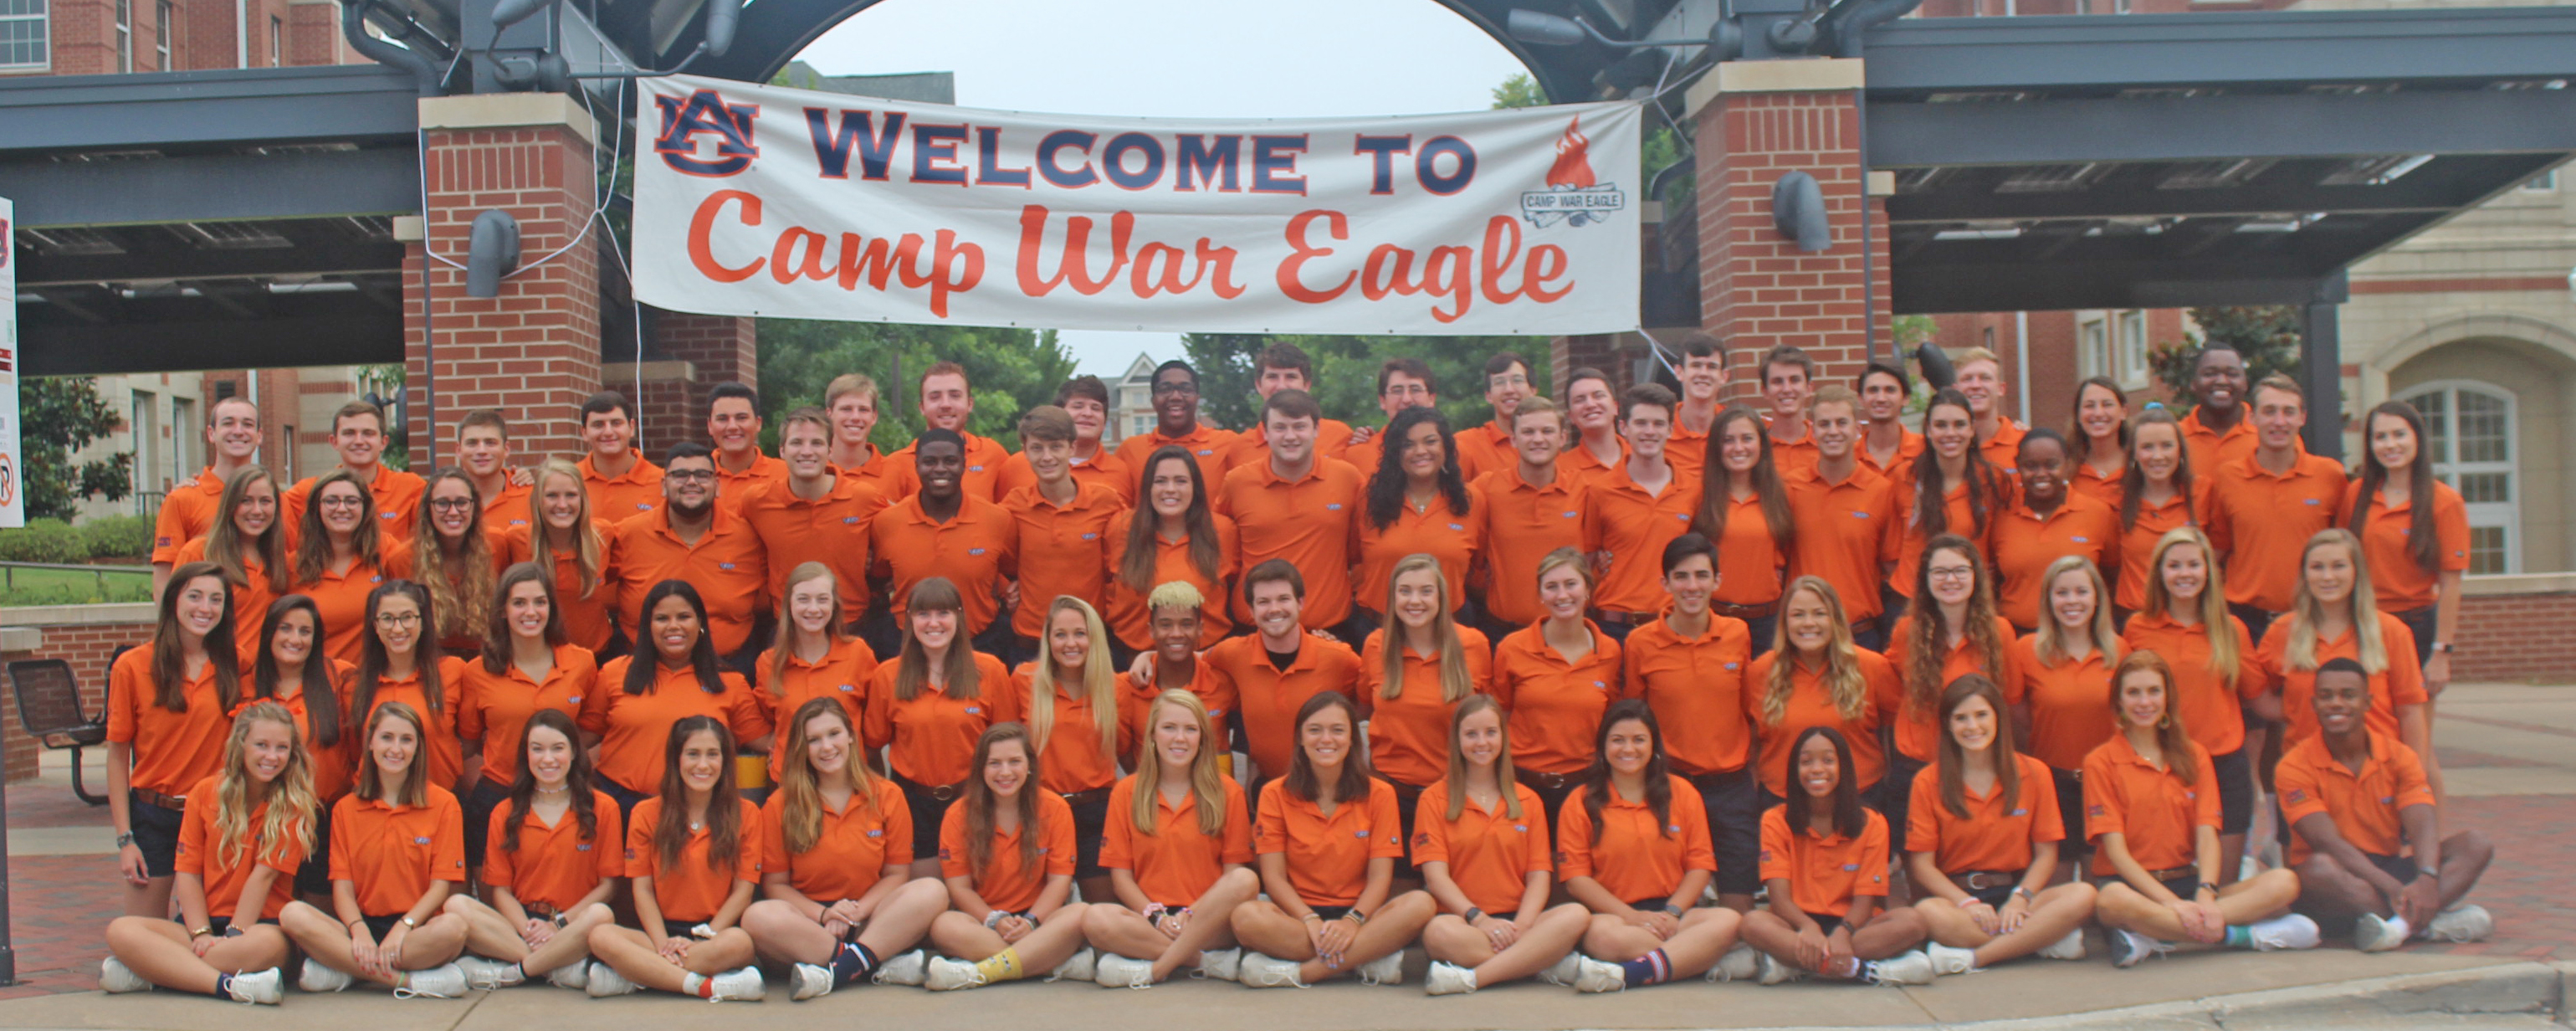 2019 Camp War Eagle Counselors in front of Welcome to Camp War Eagle sign